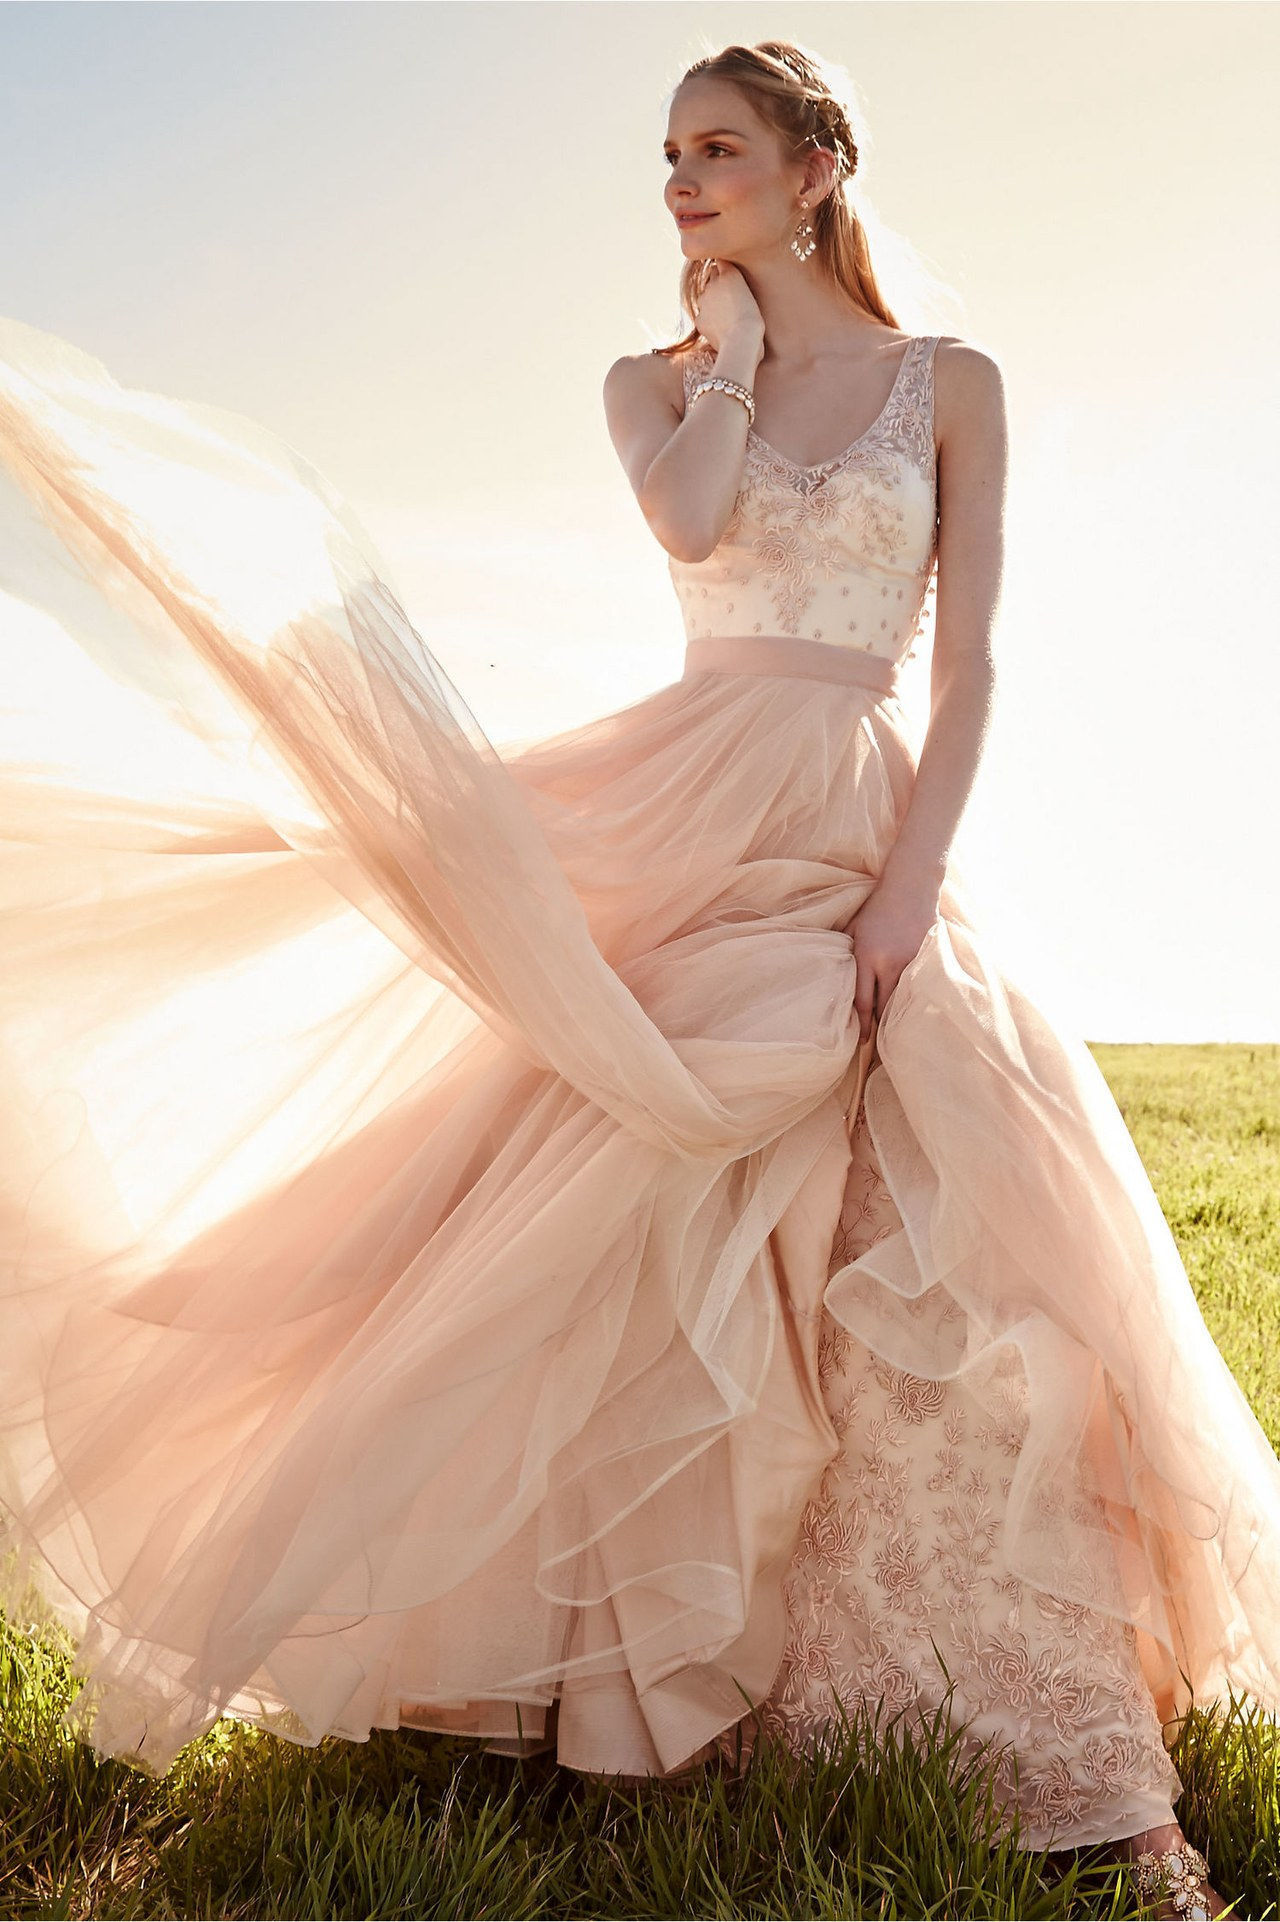 5 2 in 1 wedding dresses wedding gowns mix and match wedding dresses bhldn 0430 courtesy